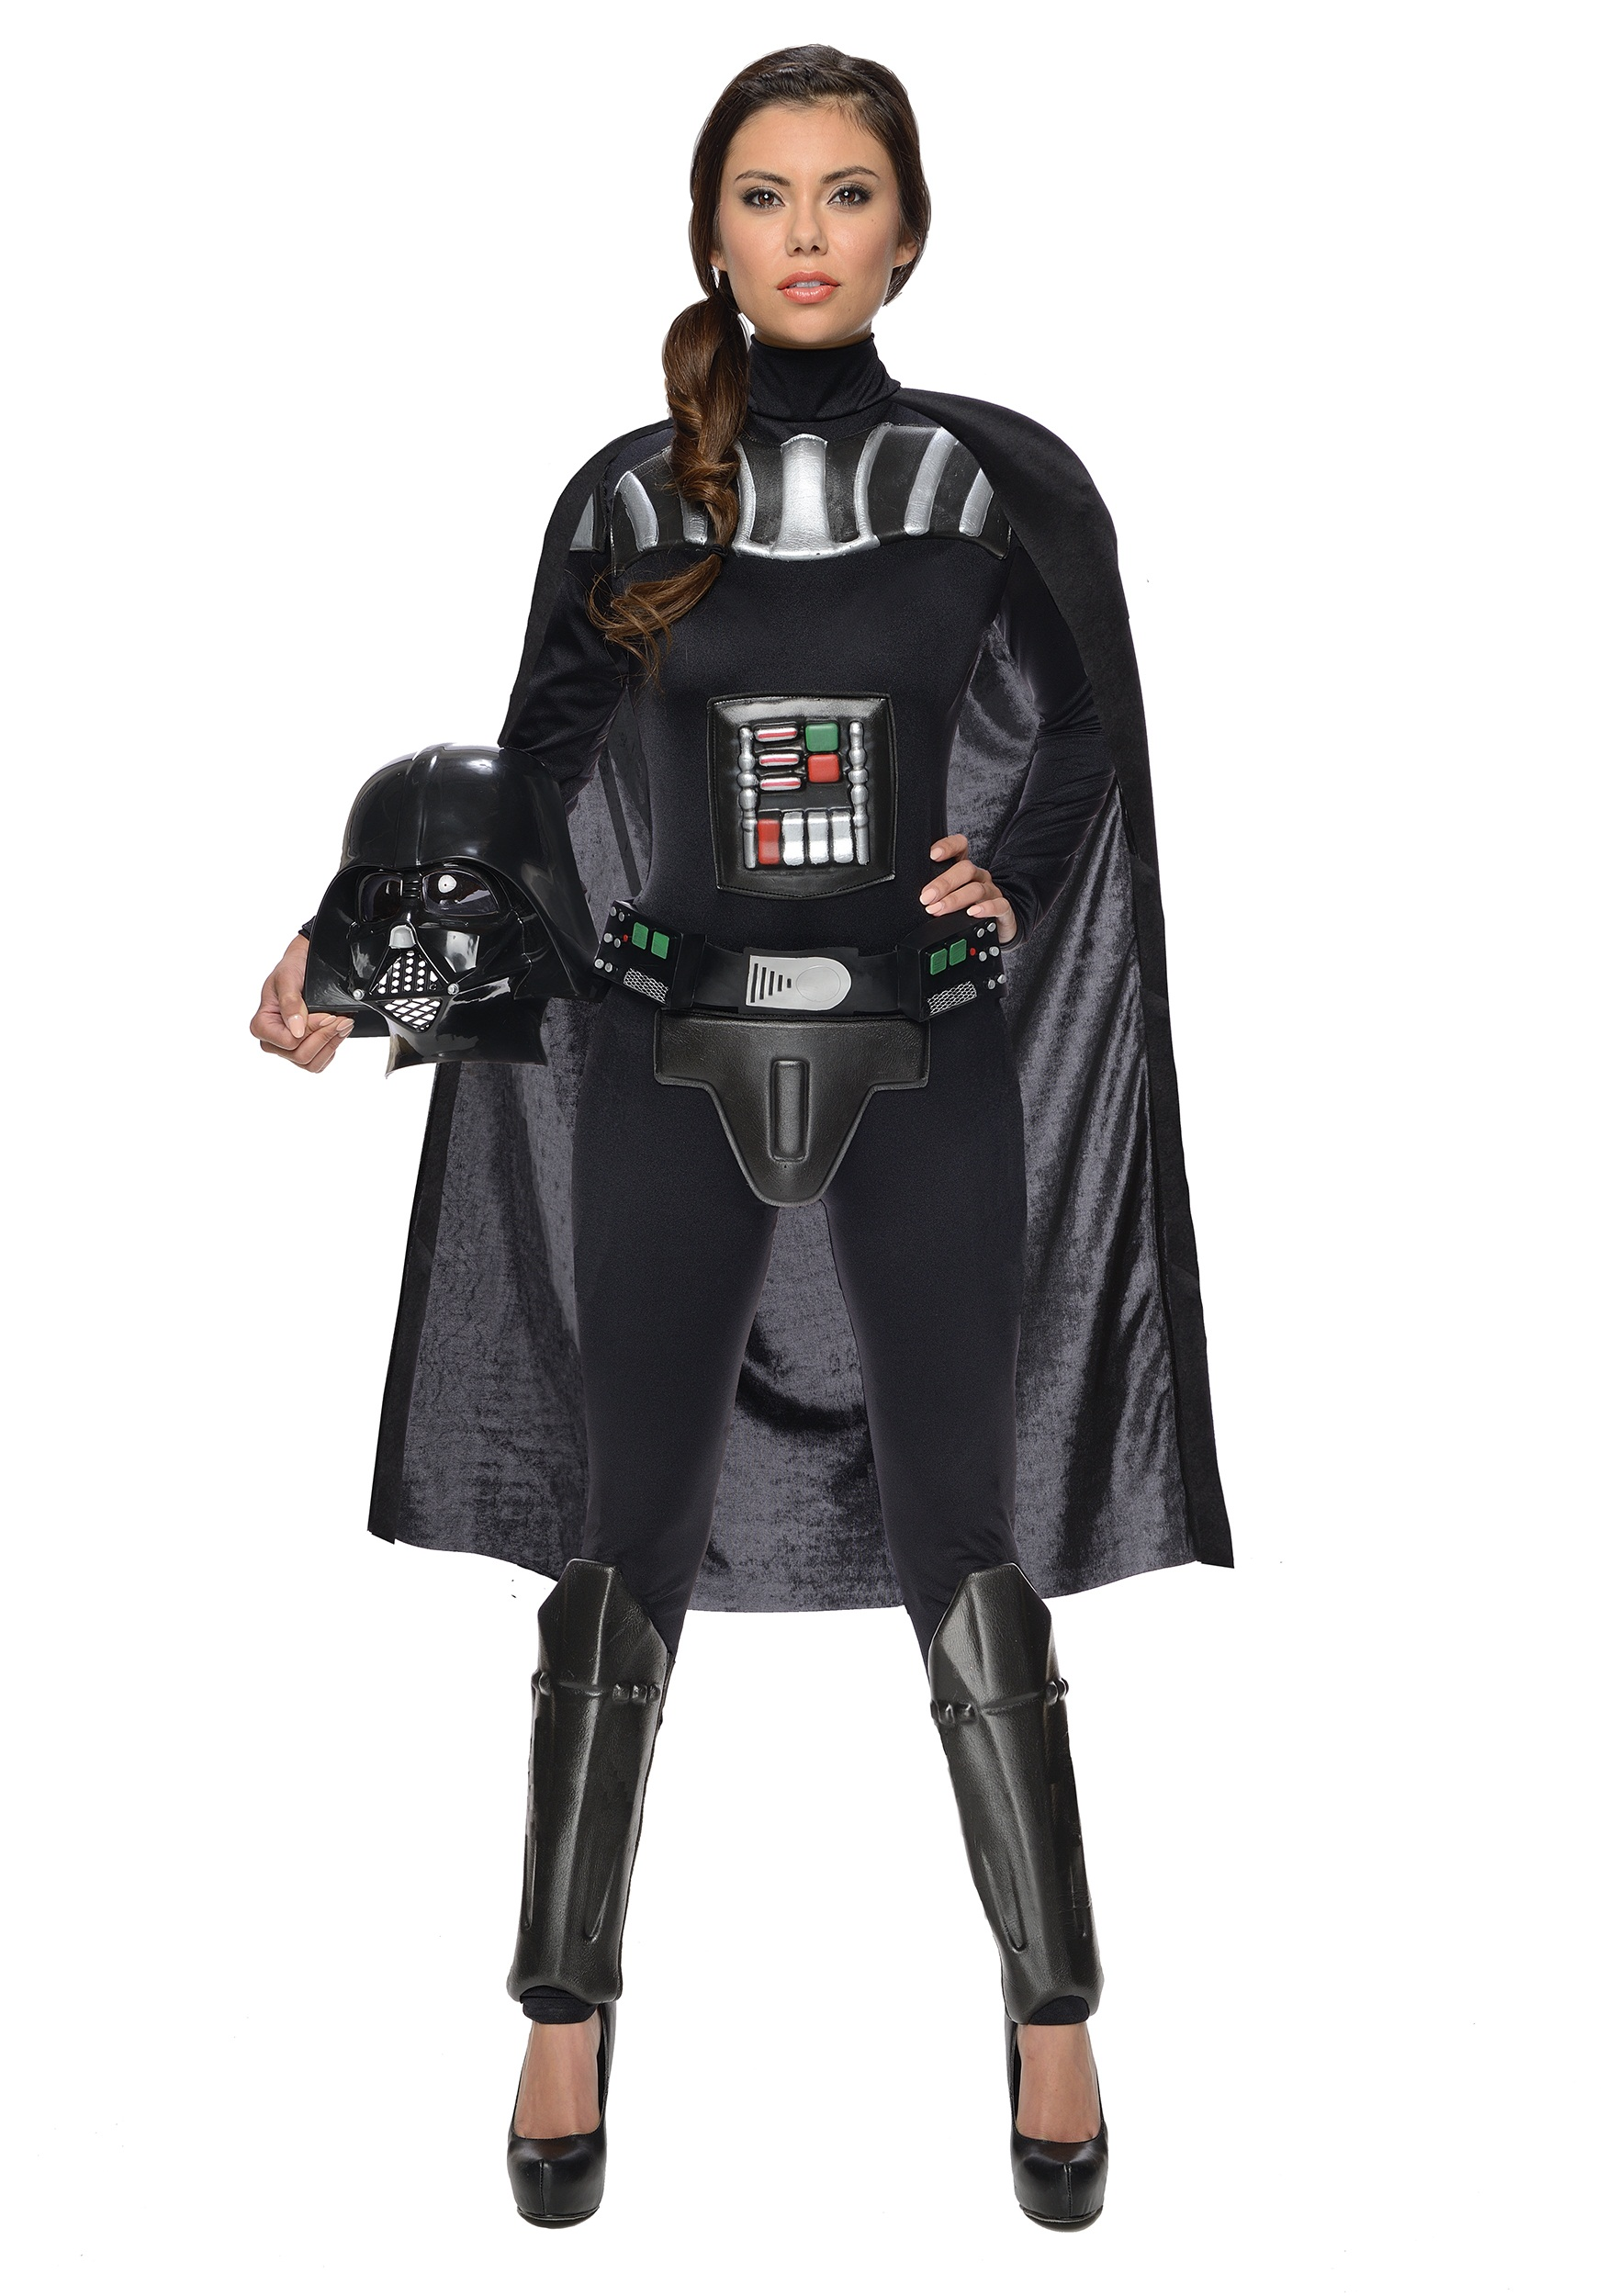 Star Wars Female Darth Vader Bodysuit Costume 1a6e5f08a